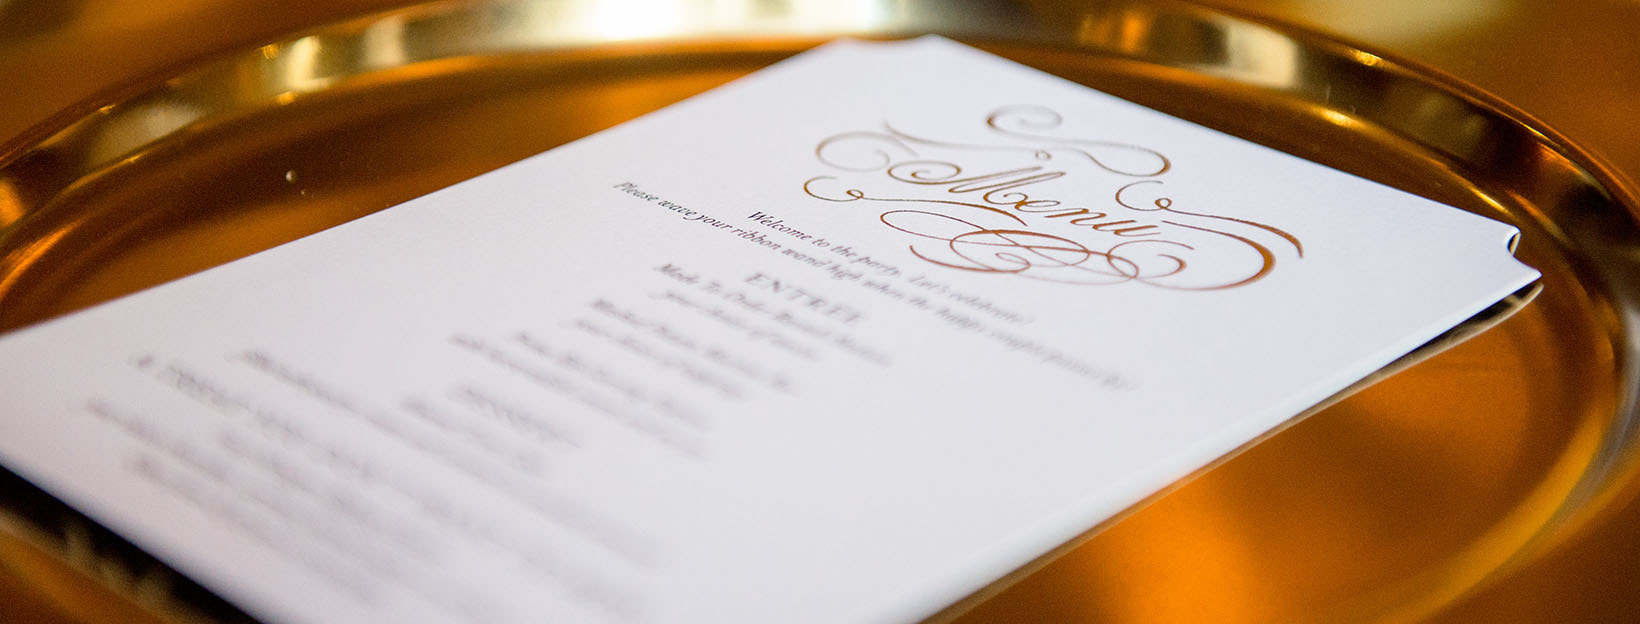 BANNER Canva - White Printed Menu on Gold Tray